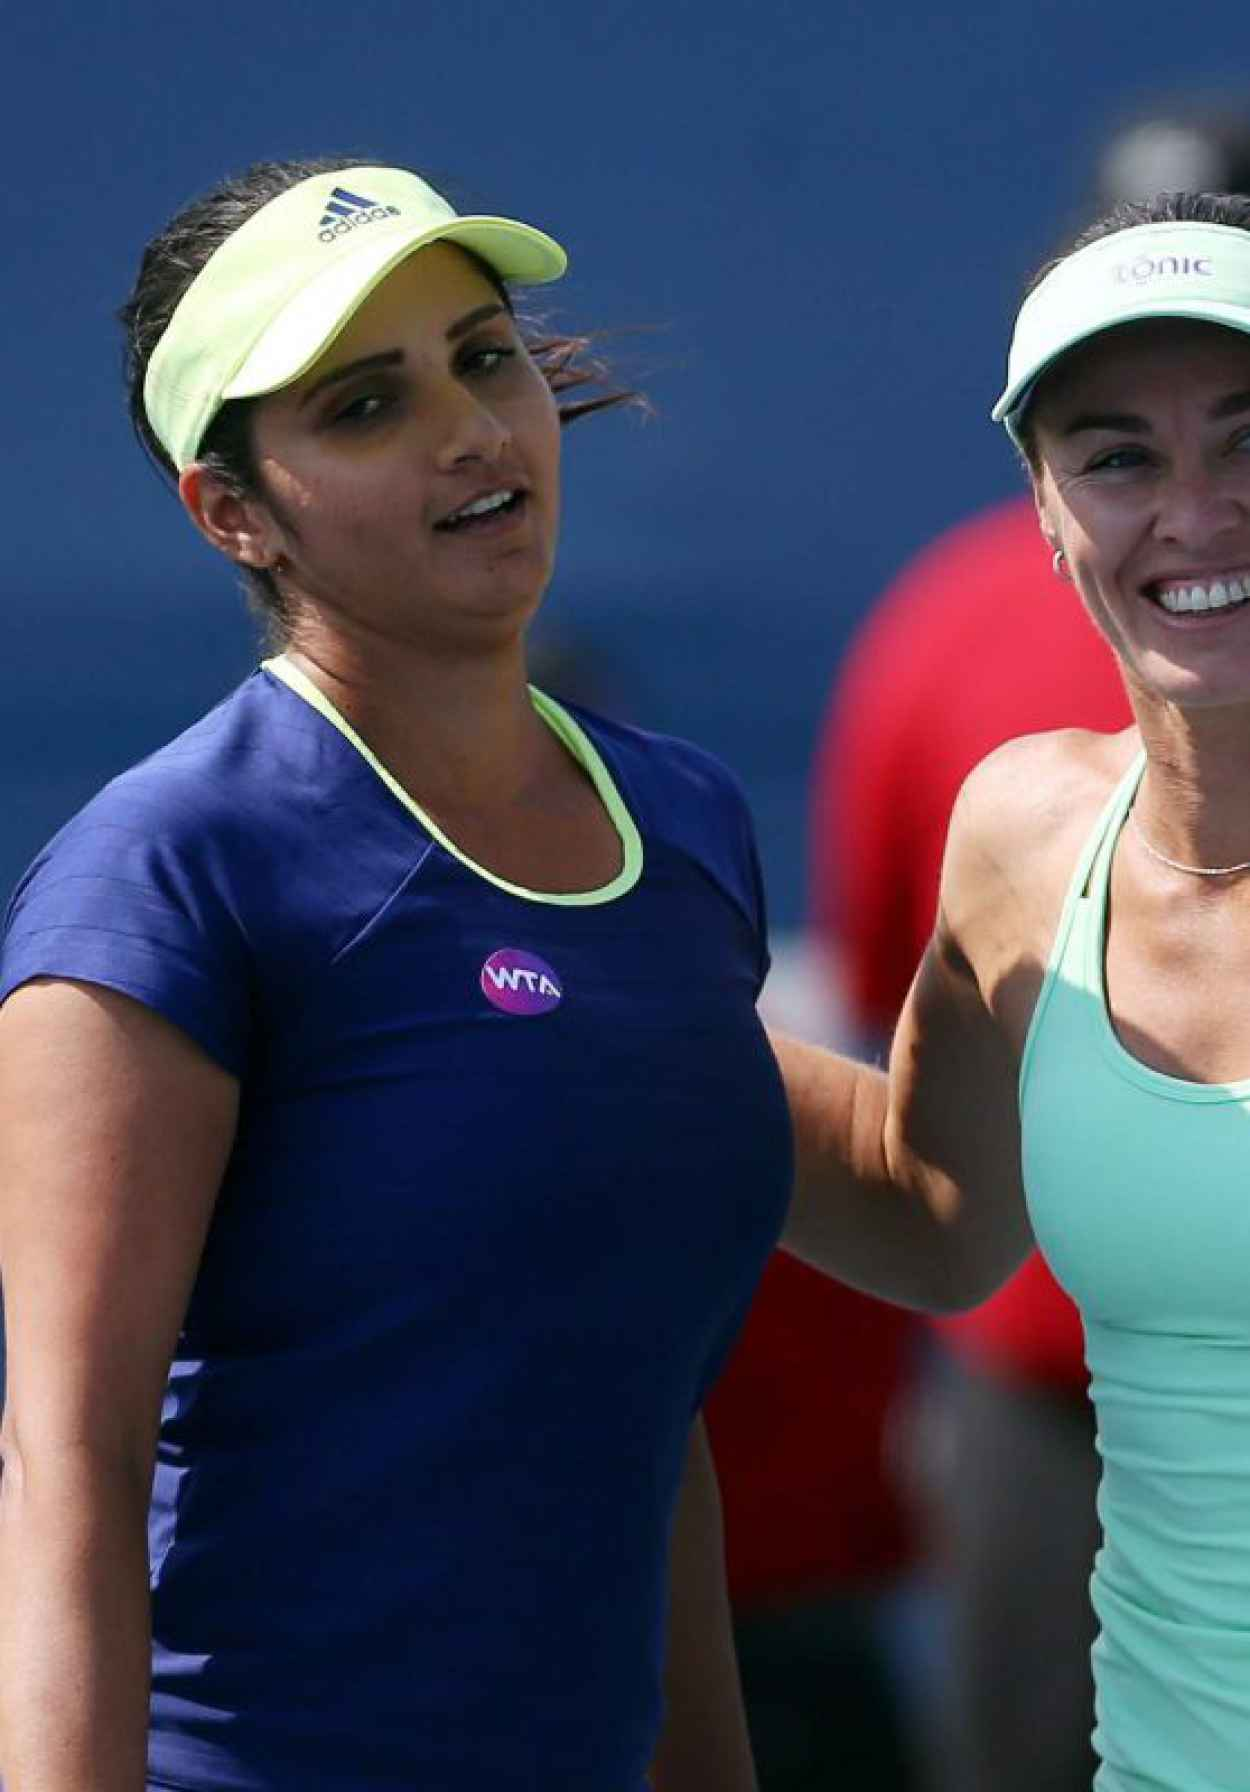 Sania Mirza & Martina Hingis - 2015 Rogers Cup in Toronto - Day 4-1